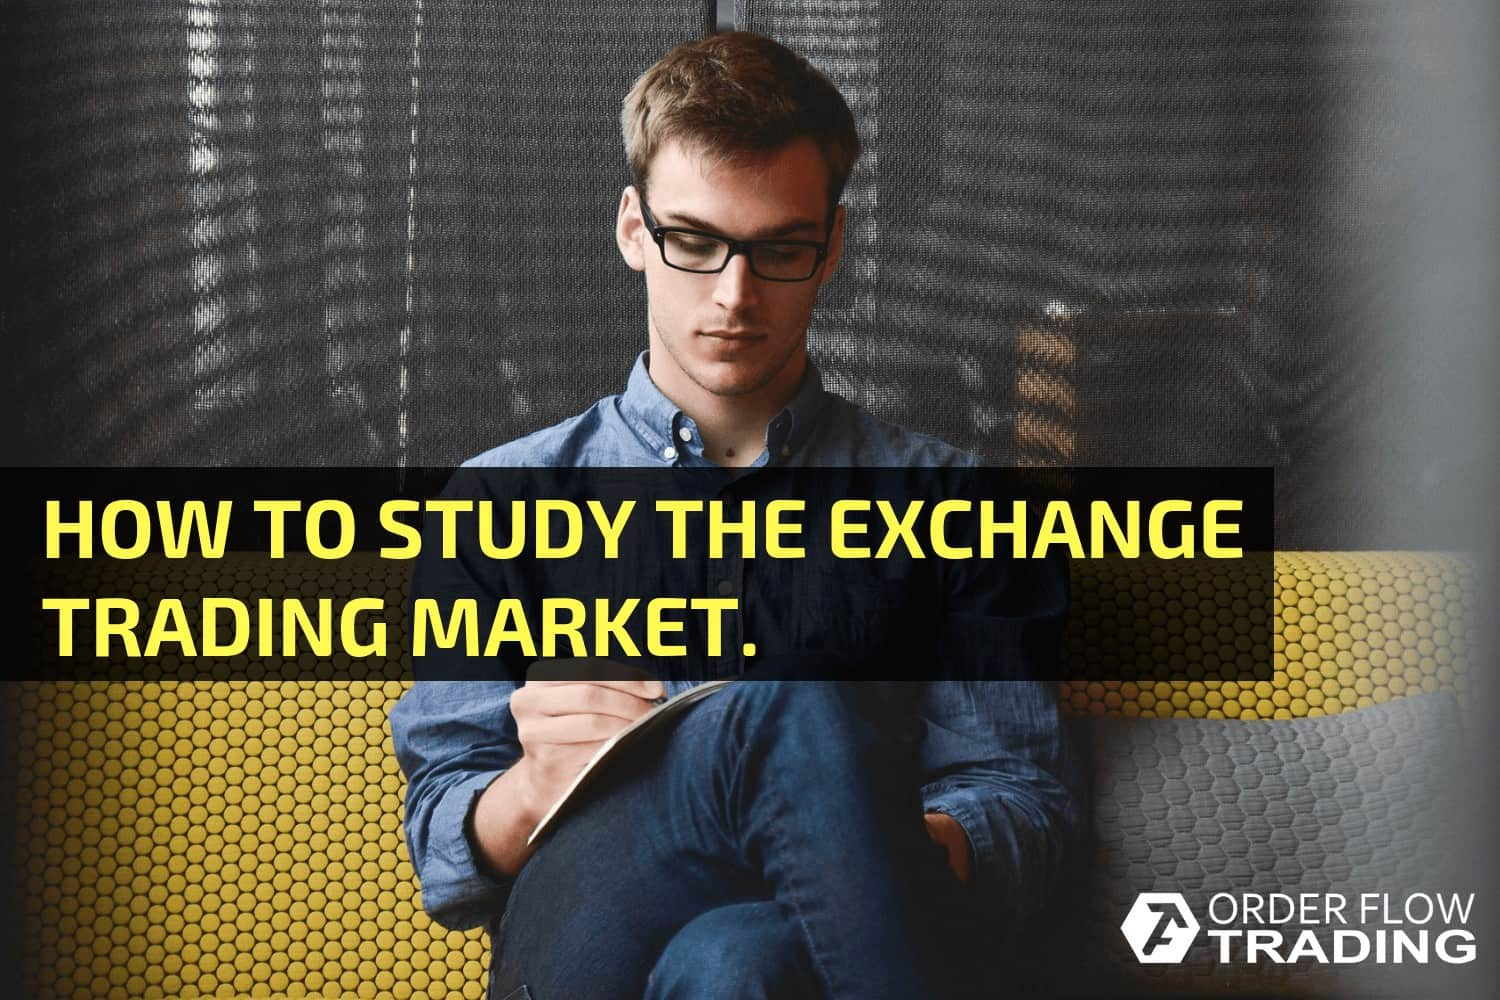 HOW TO STUDY THE EXCHANGE TRADING MARKET.